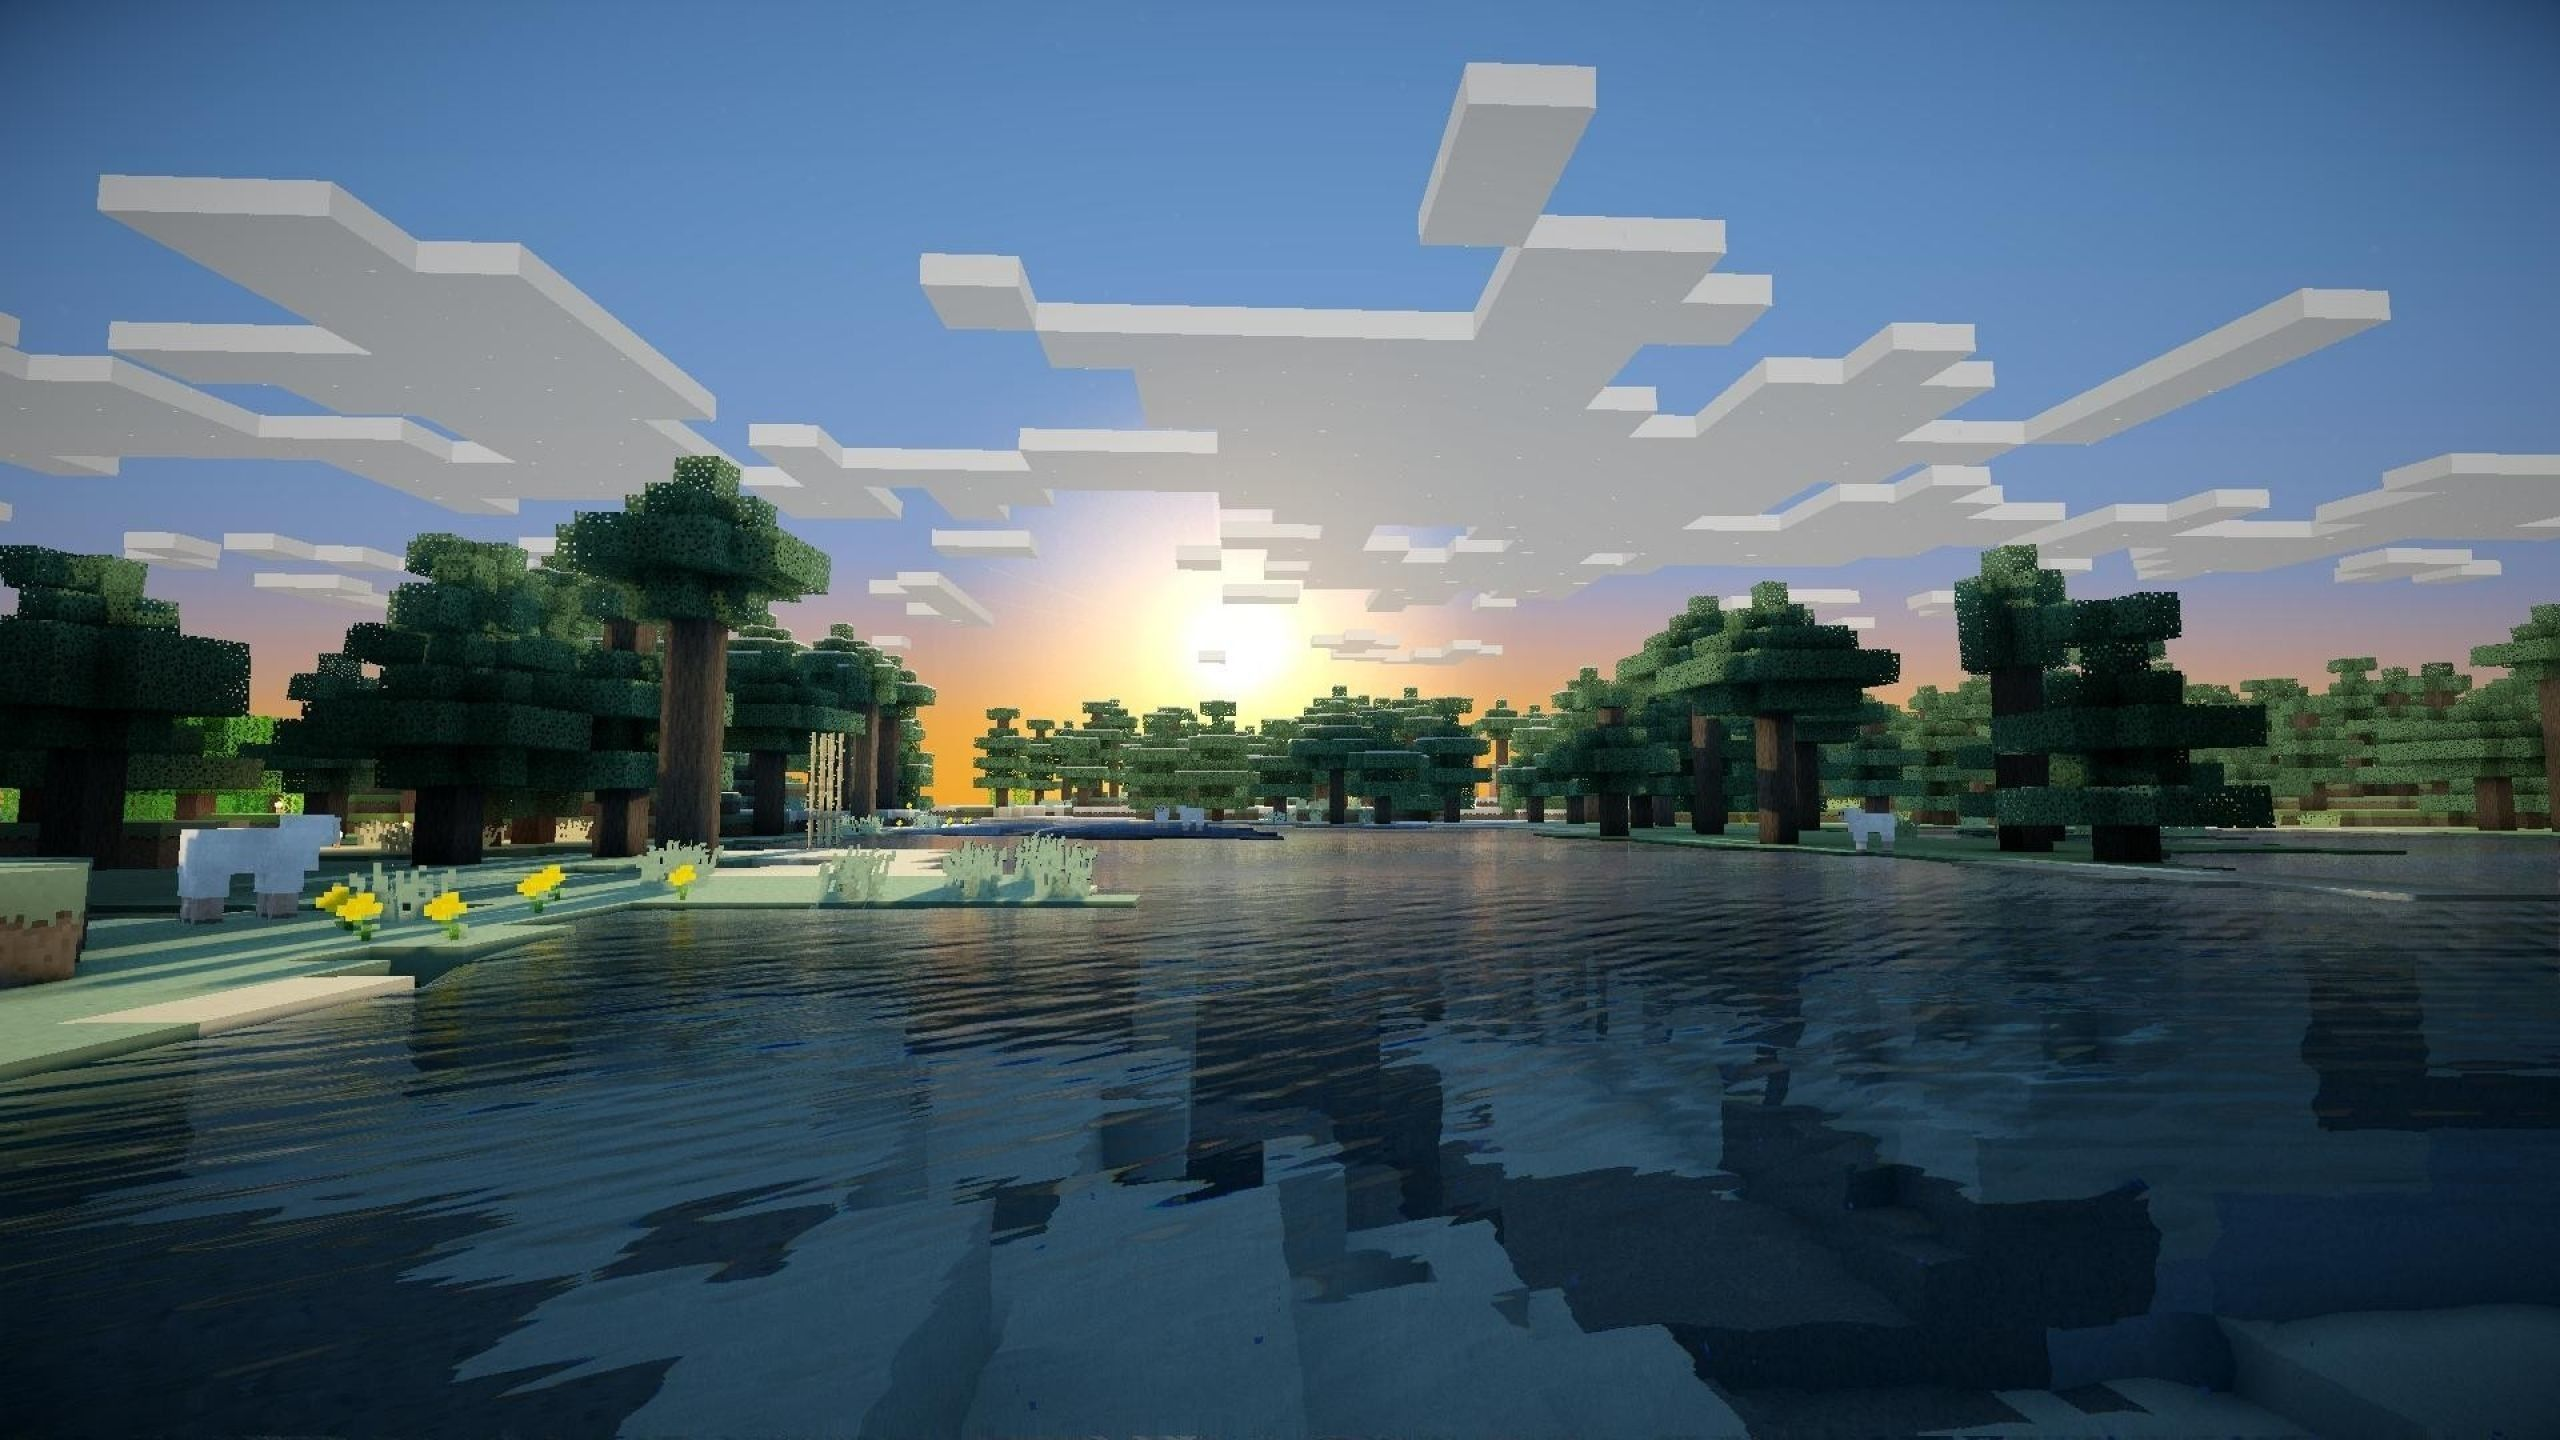 87 Minecraft Hd Wallpapers On Wallpaperplay In 2020 Minecraft